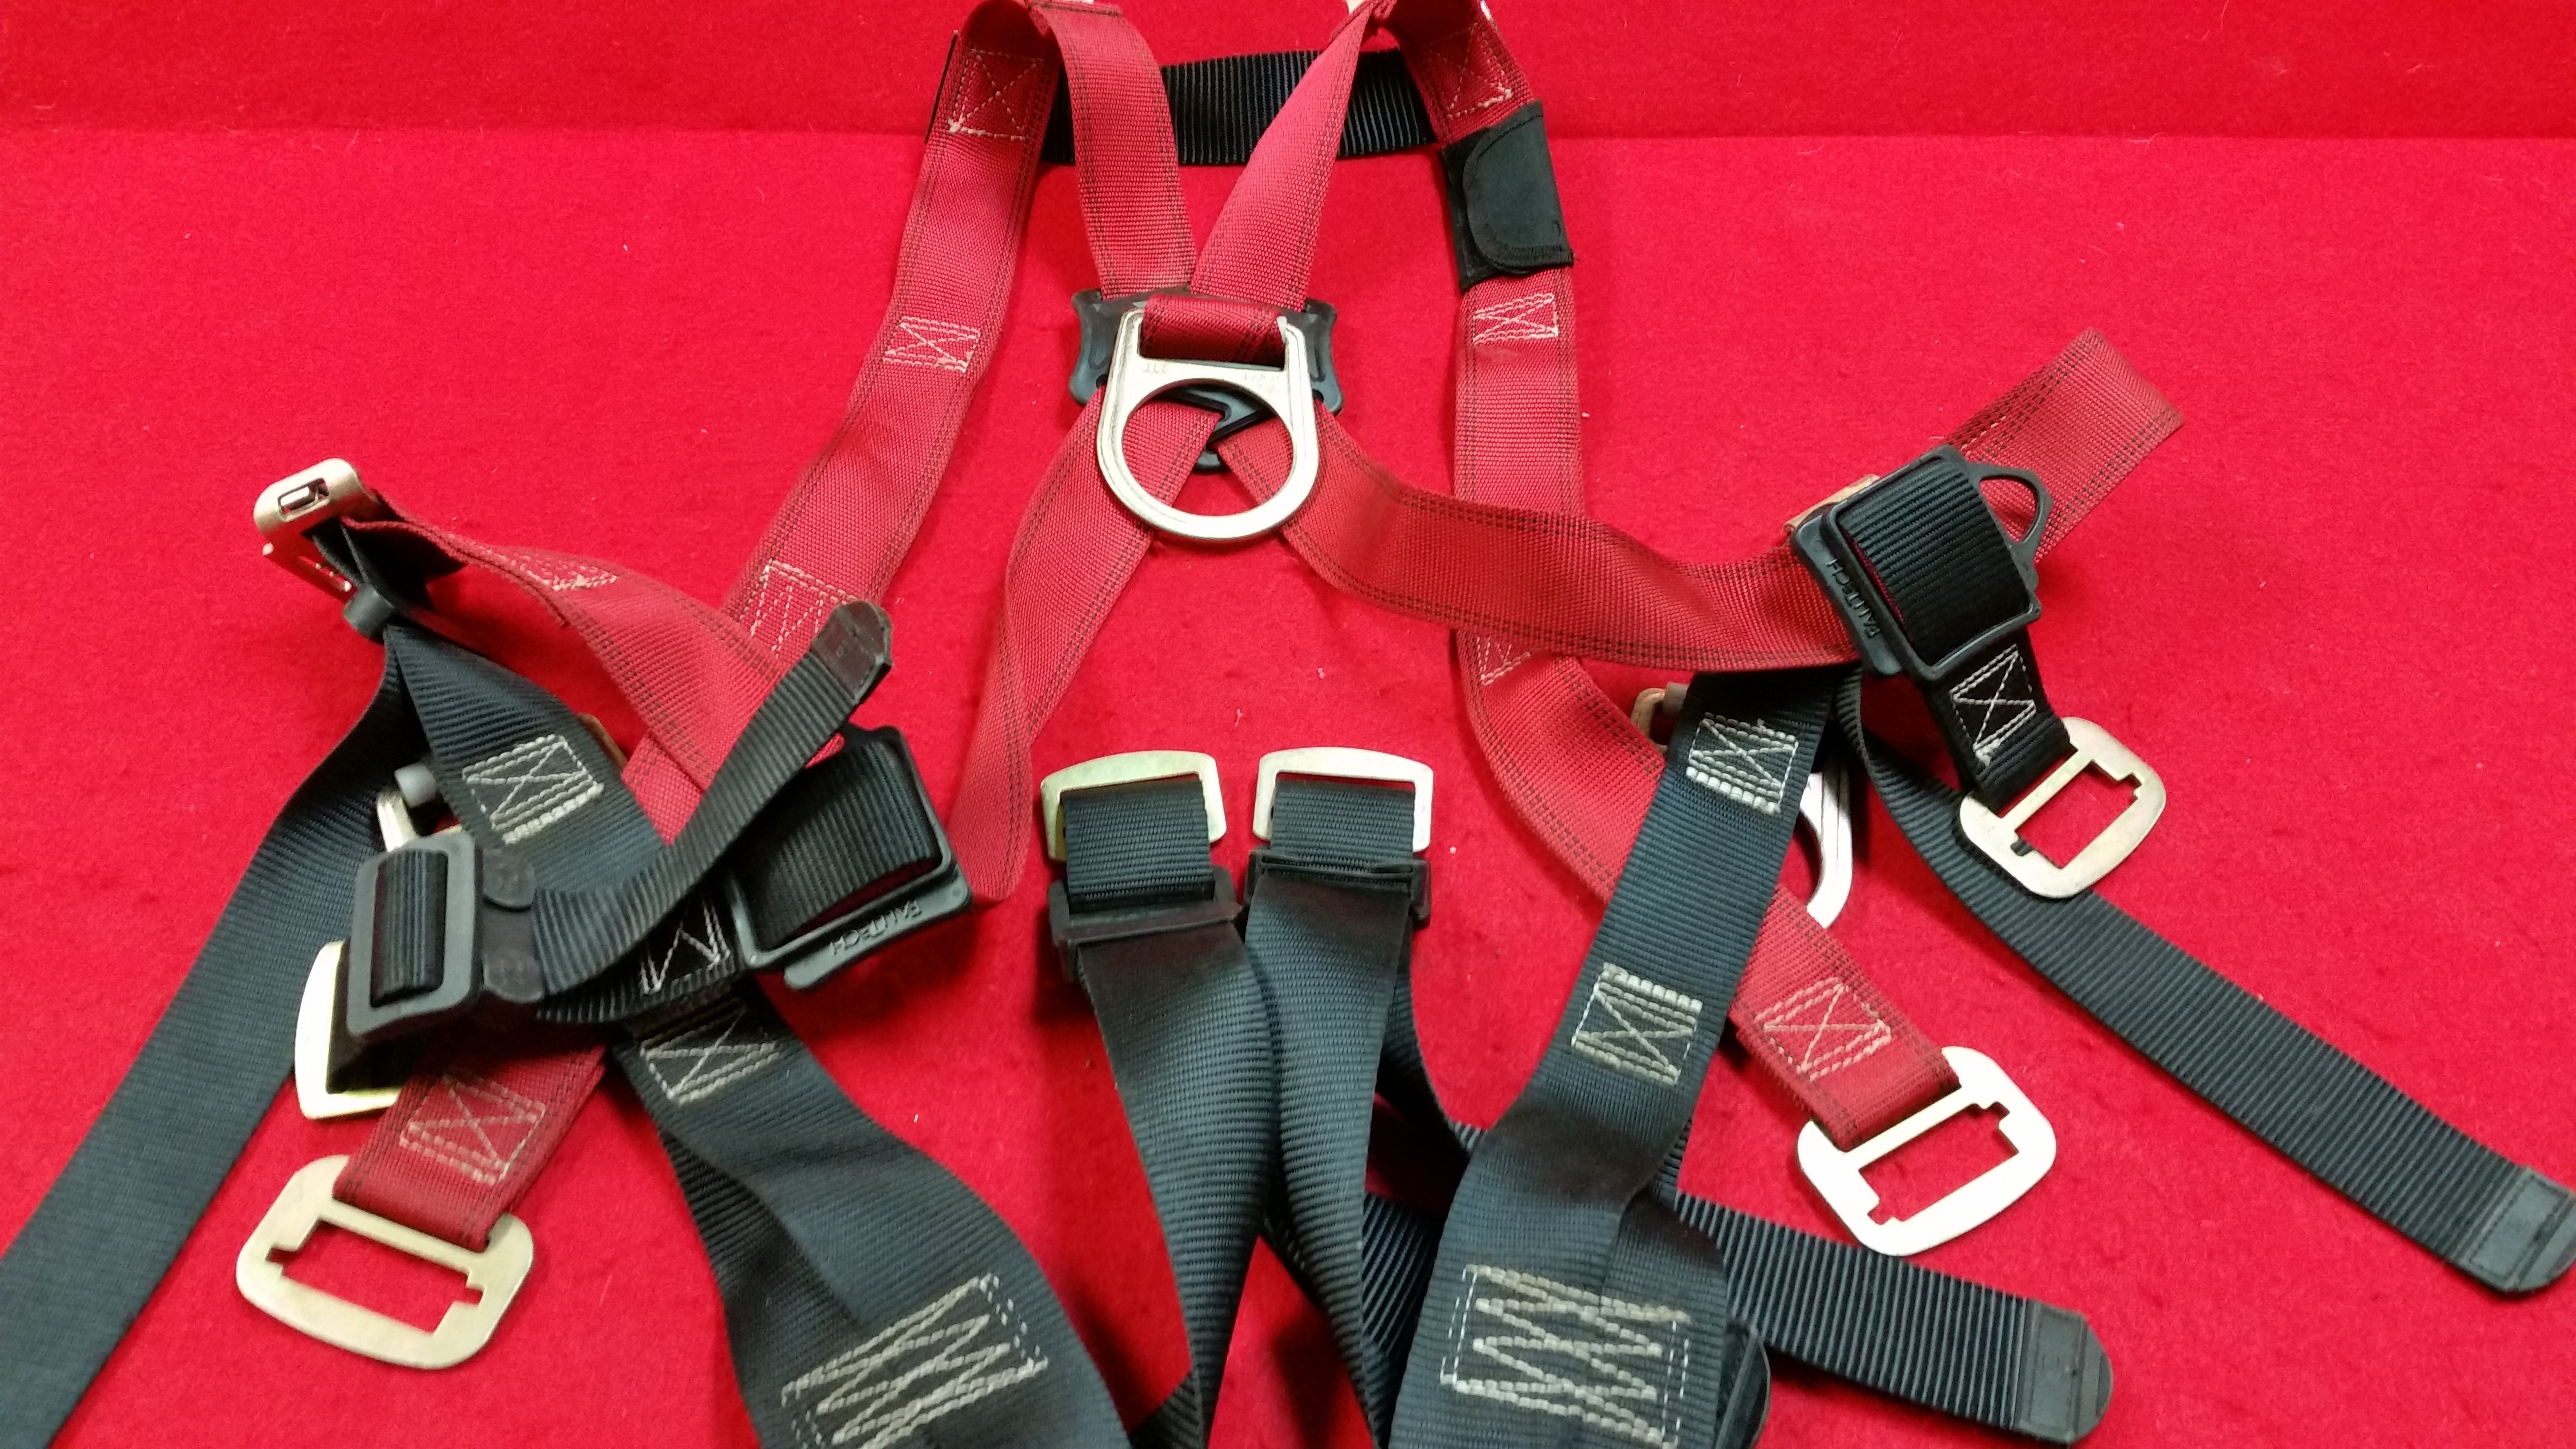 CLIMBING ACCESSORIES: FALLTECH FULL BODY HARNESS - S/M SIZE